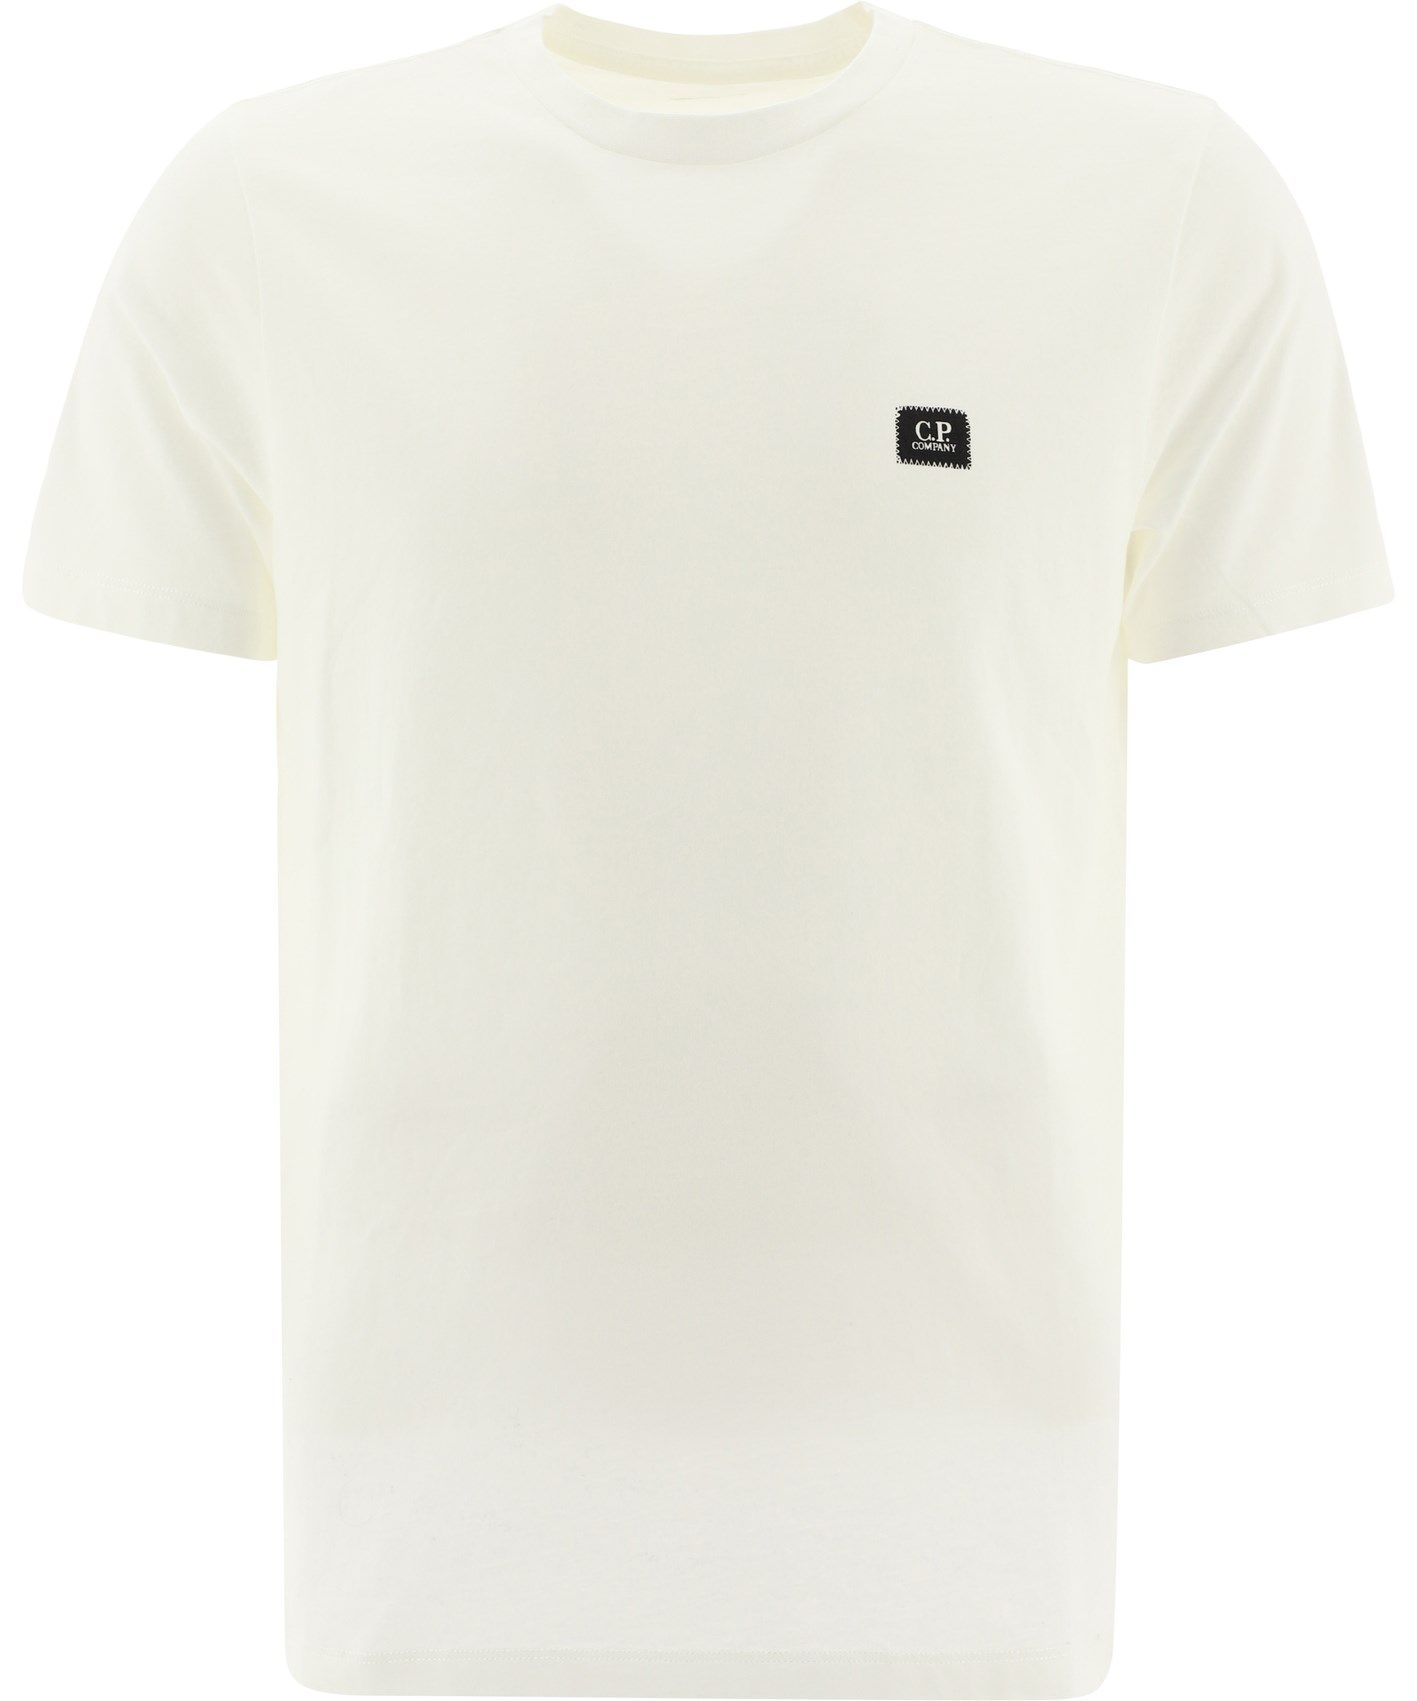 C.p. Company T-shirts CP COMPANY MEN'S 09CMTS026A005100W103 WHITE OTHER MATERIALS T-SHIRT